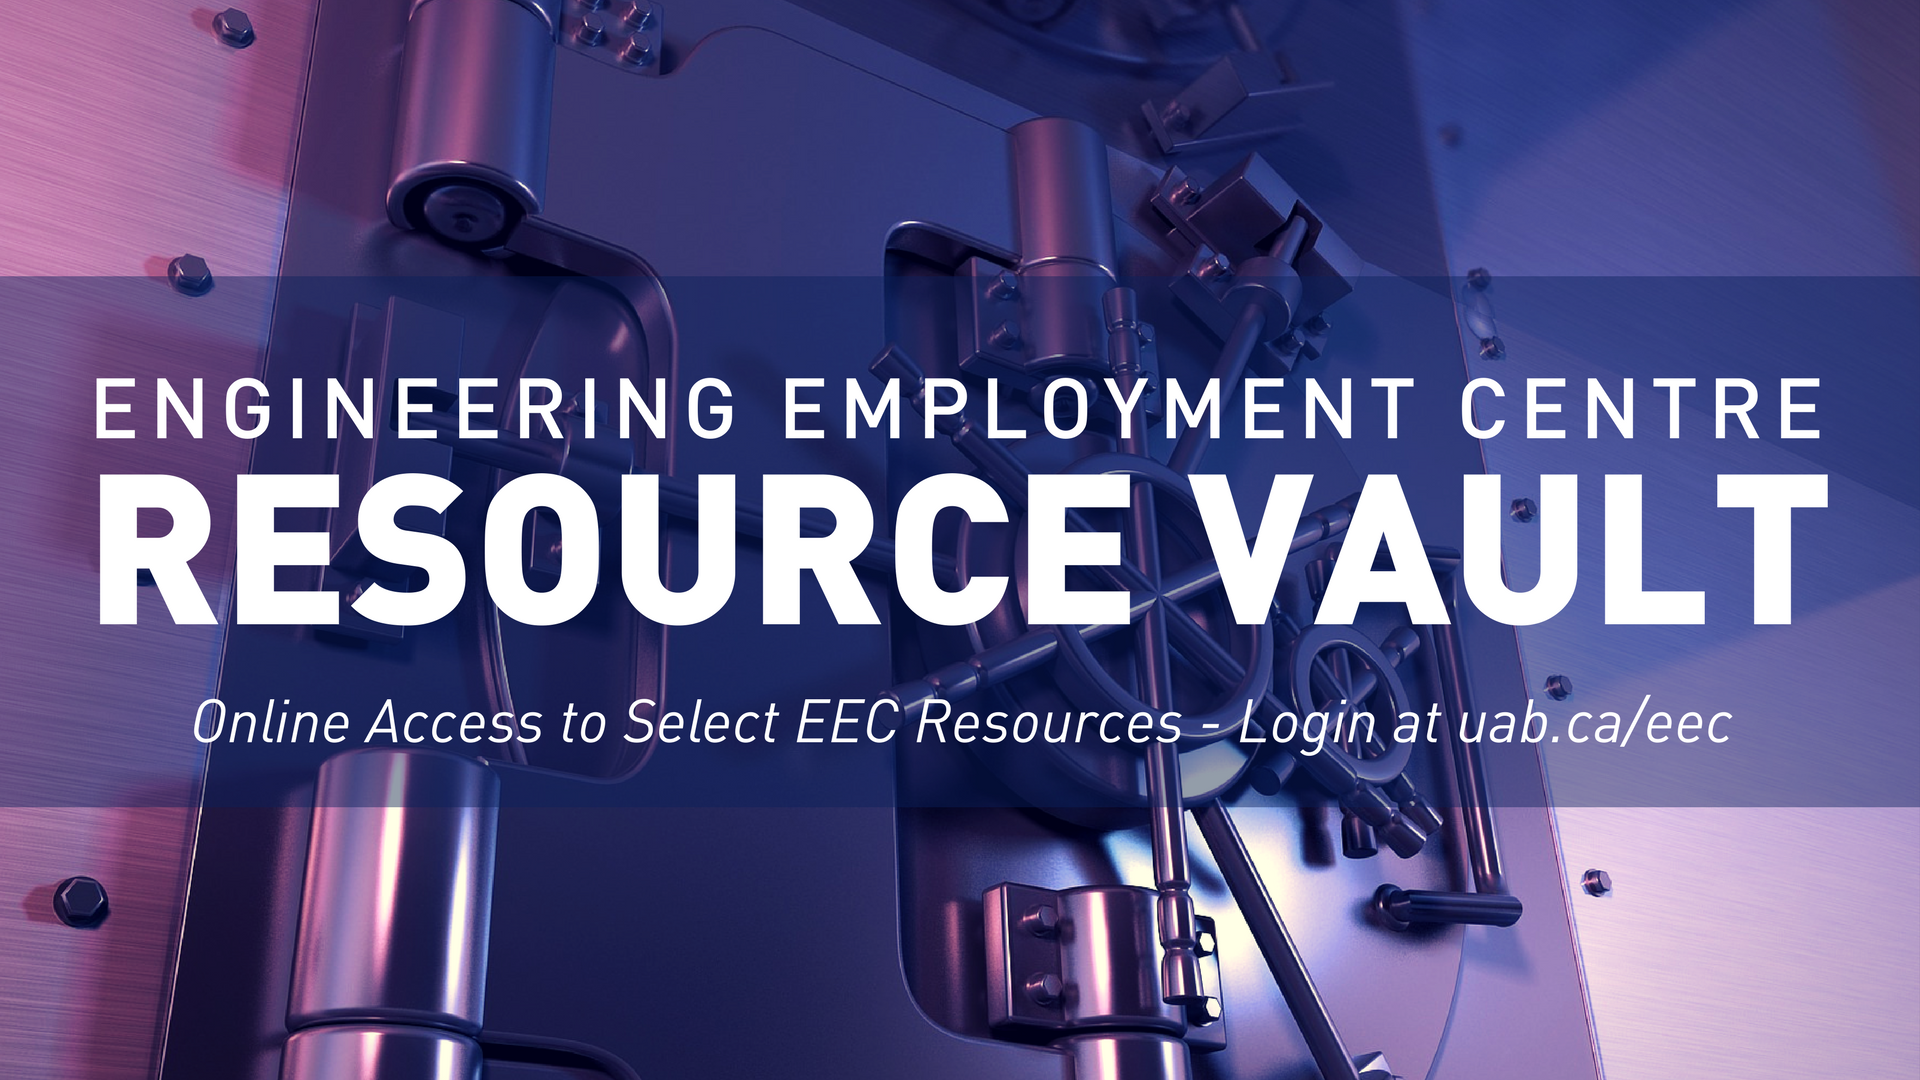 Engineering Employment Centre Resource Vault. Online Access to Select EEC Resources. Click to login now!